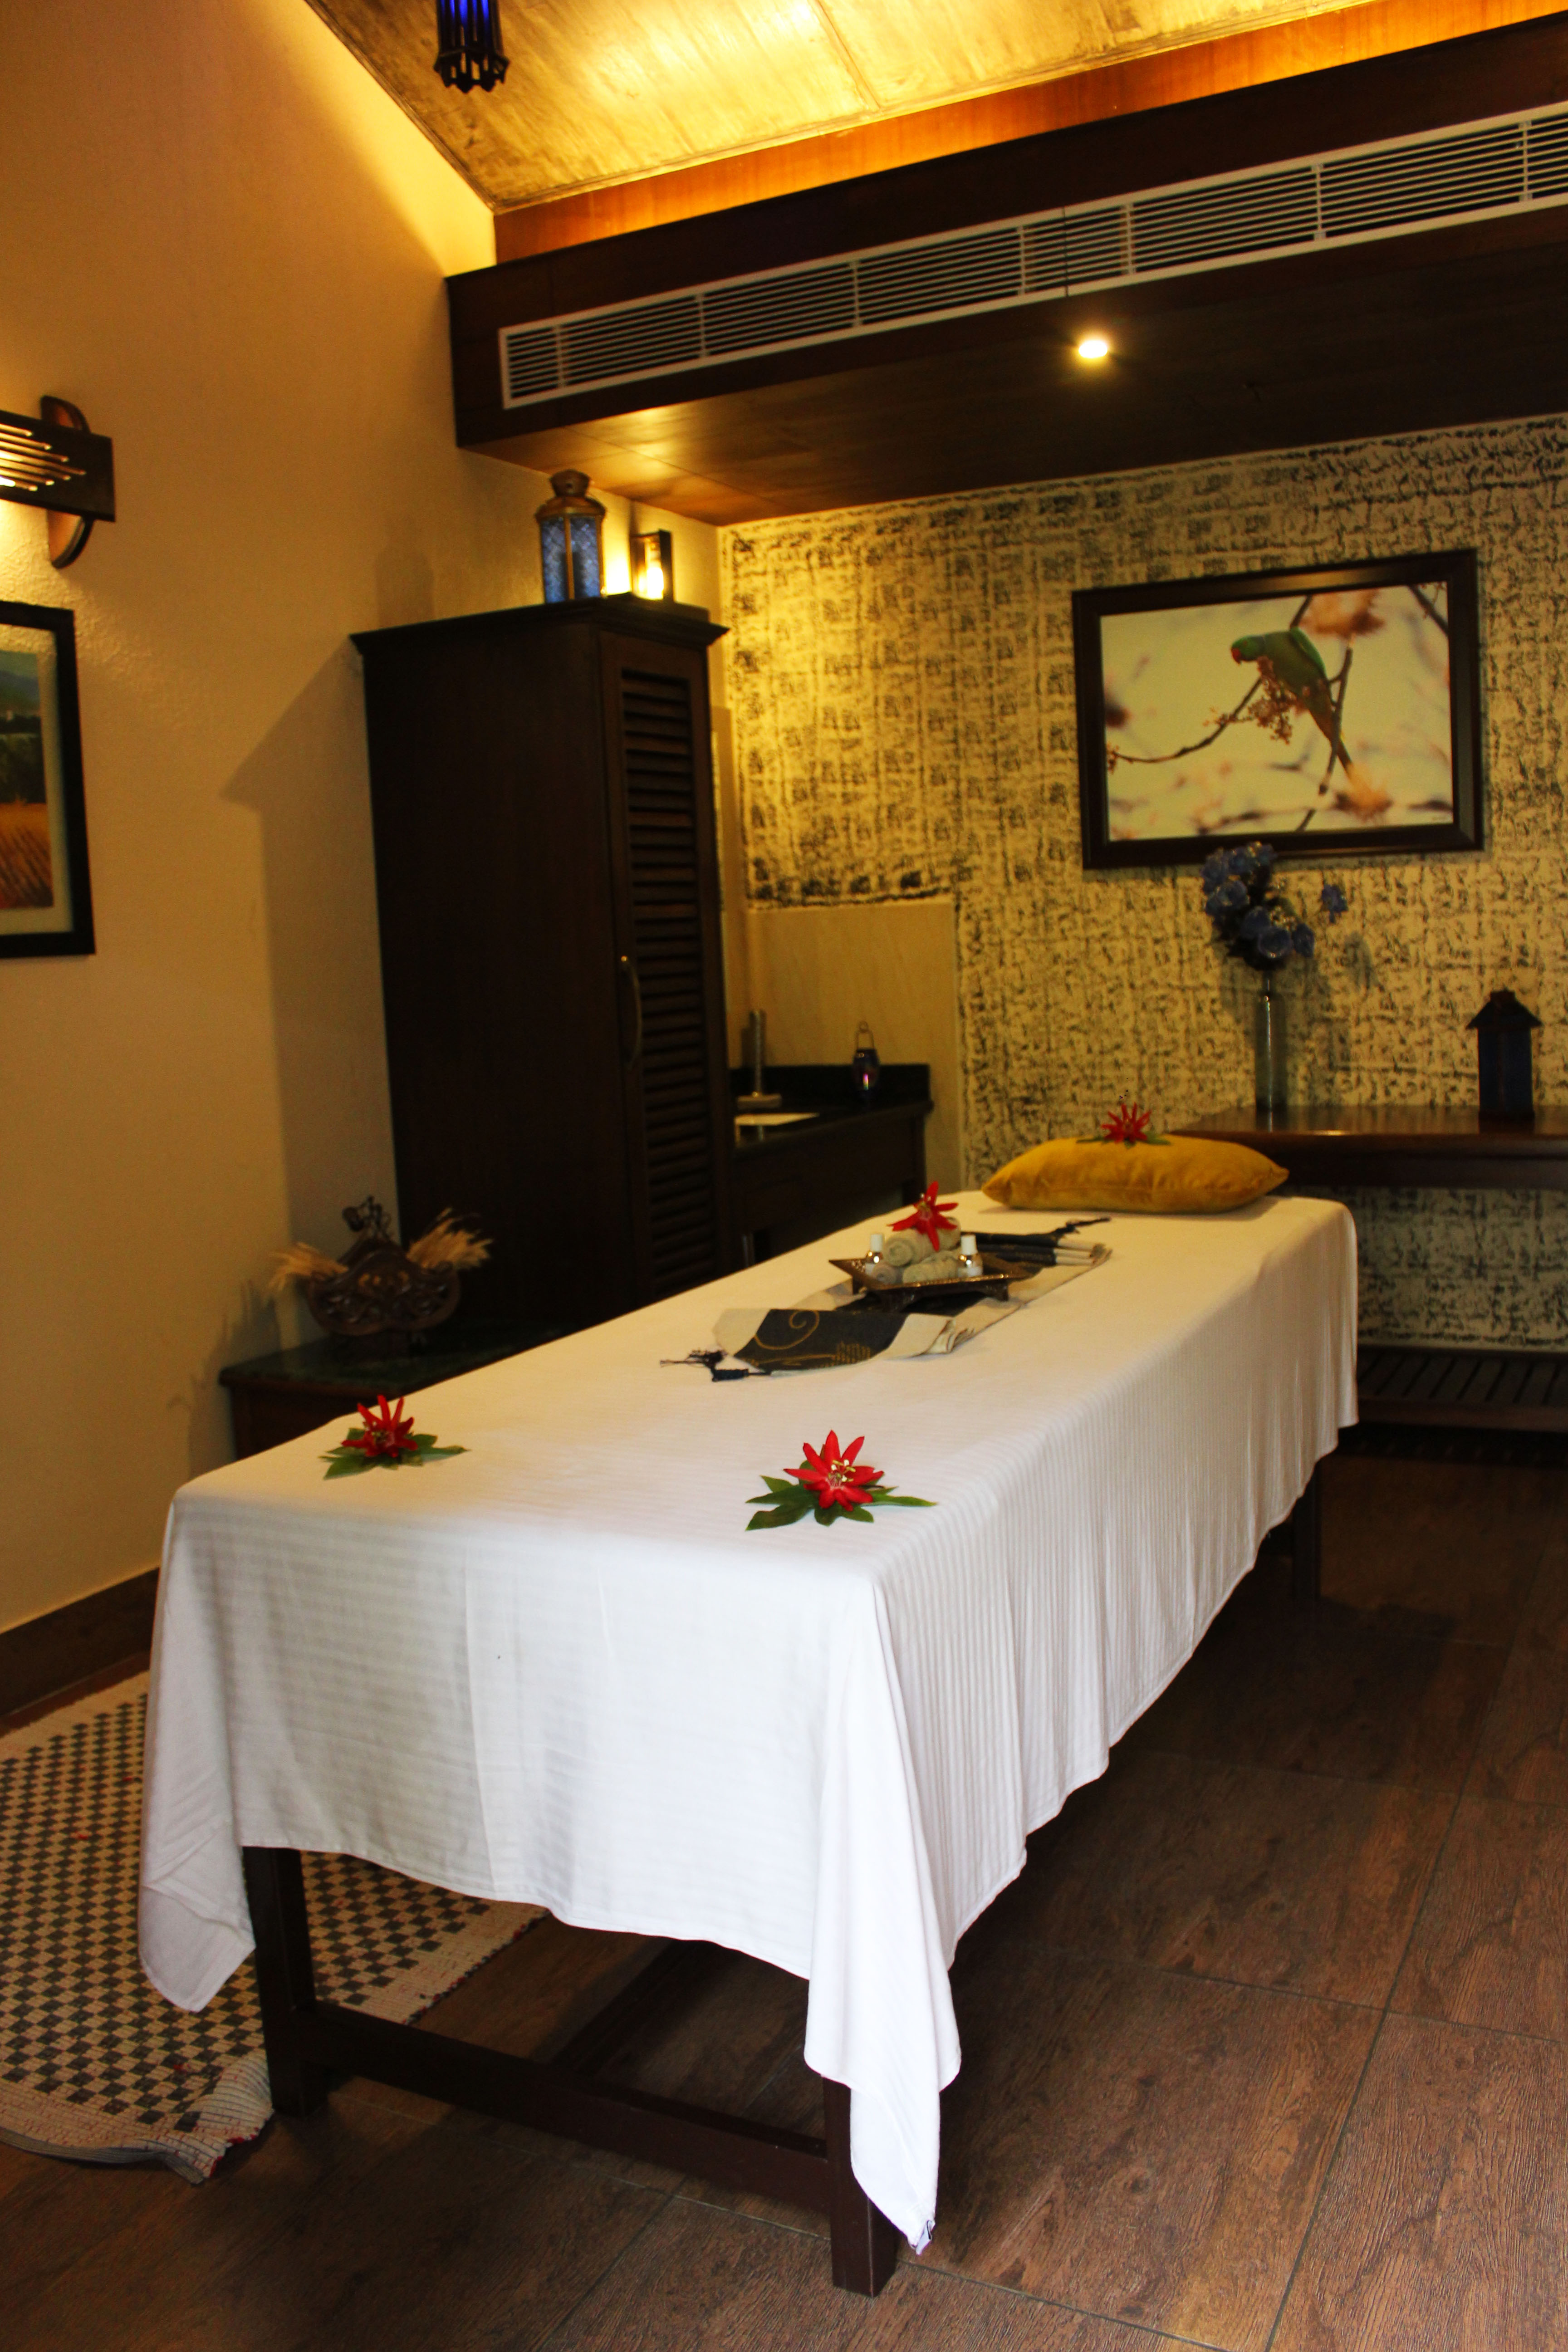 Or relax in the lovely spa that Aahana boasts of